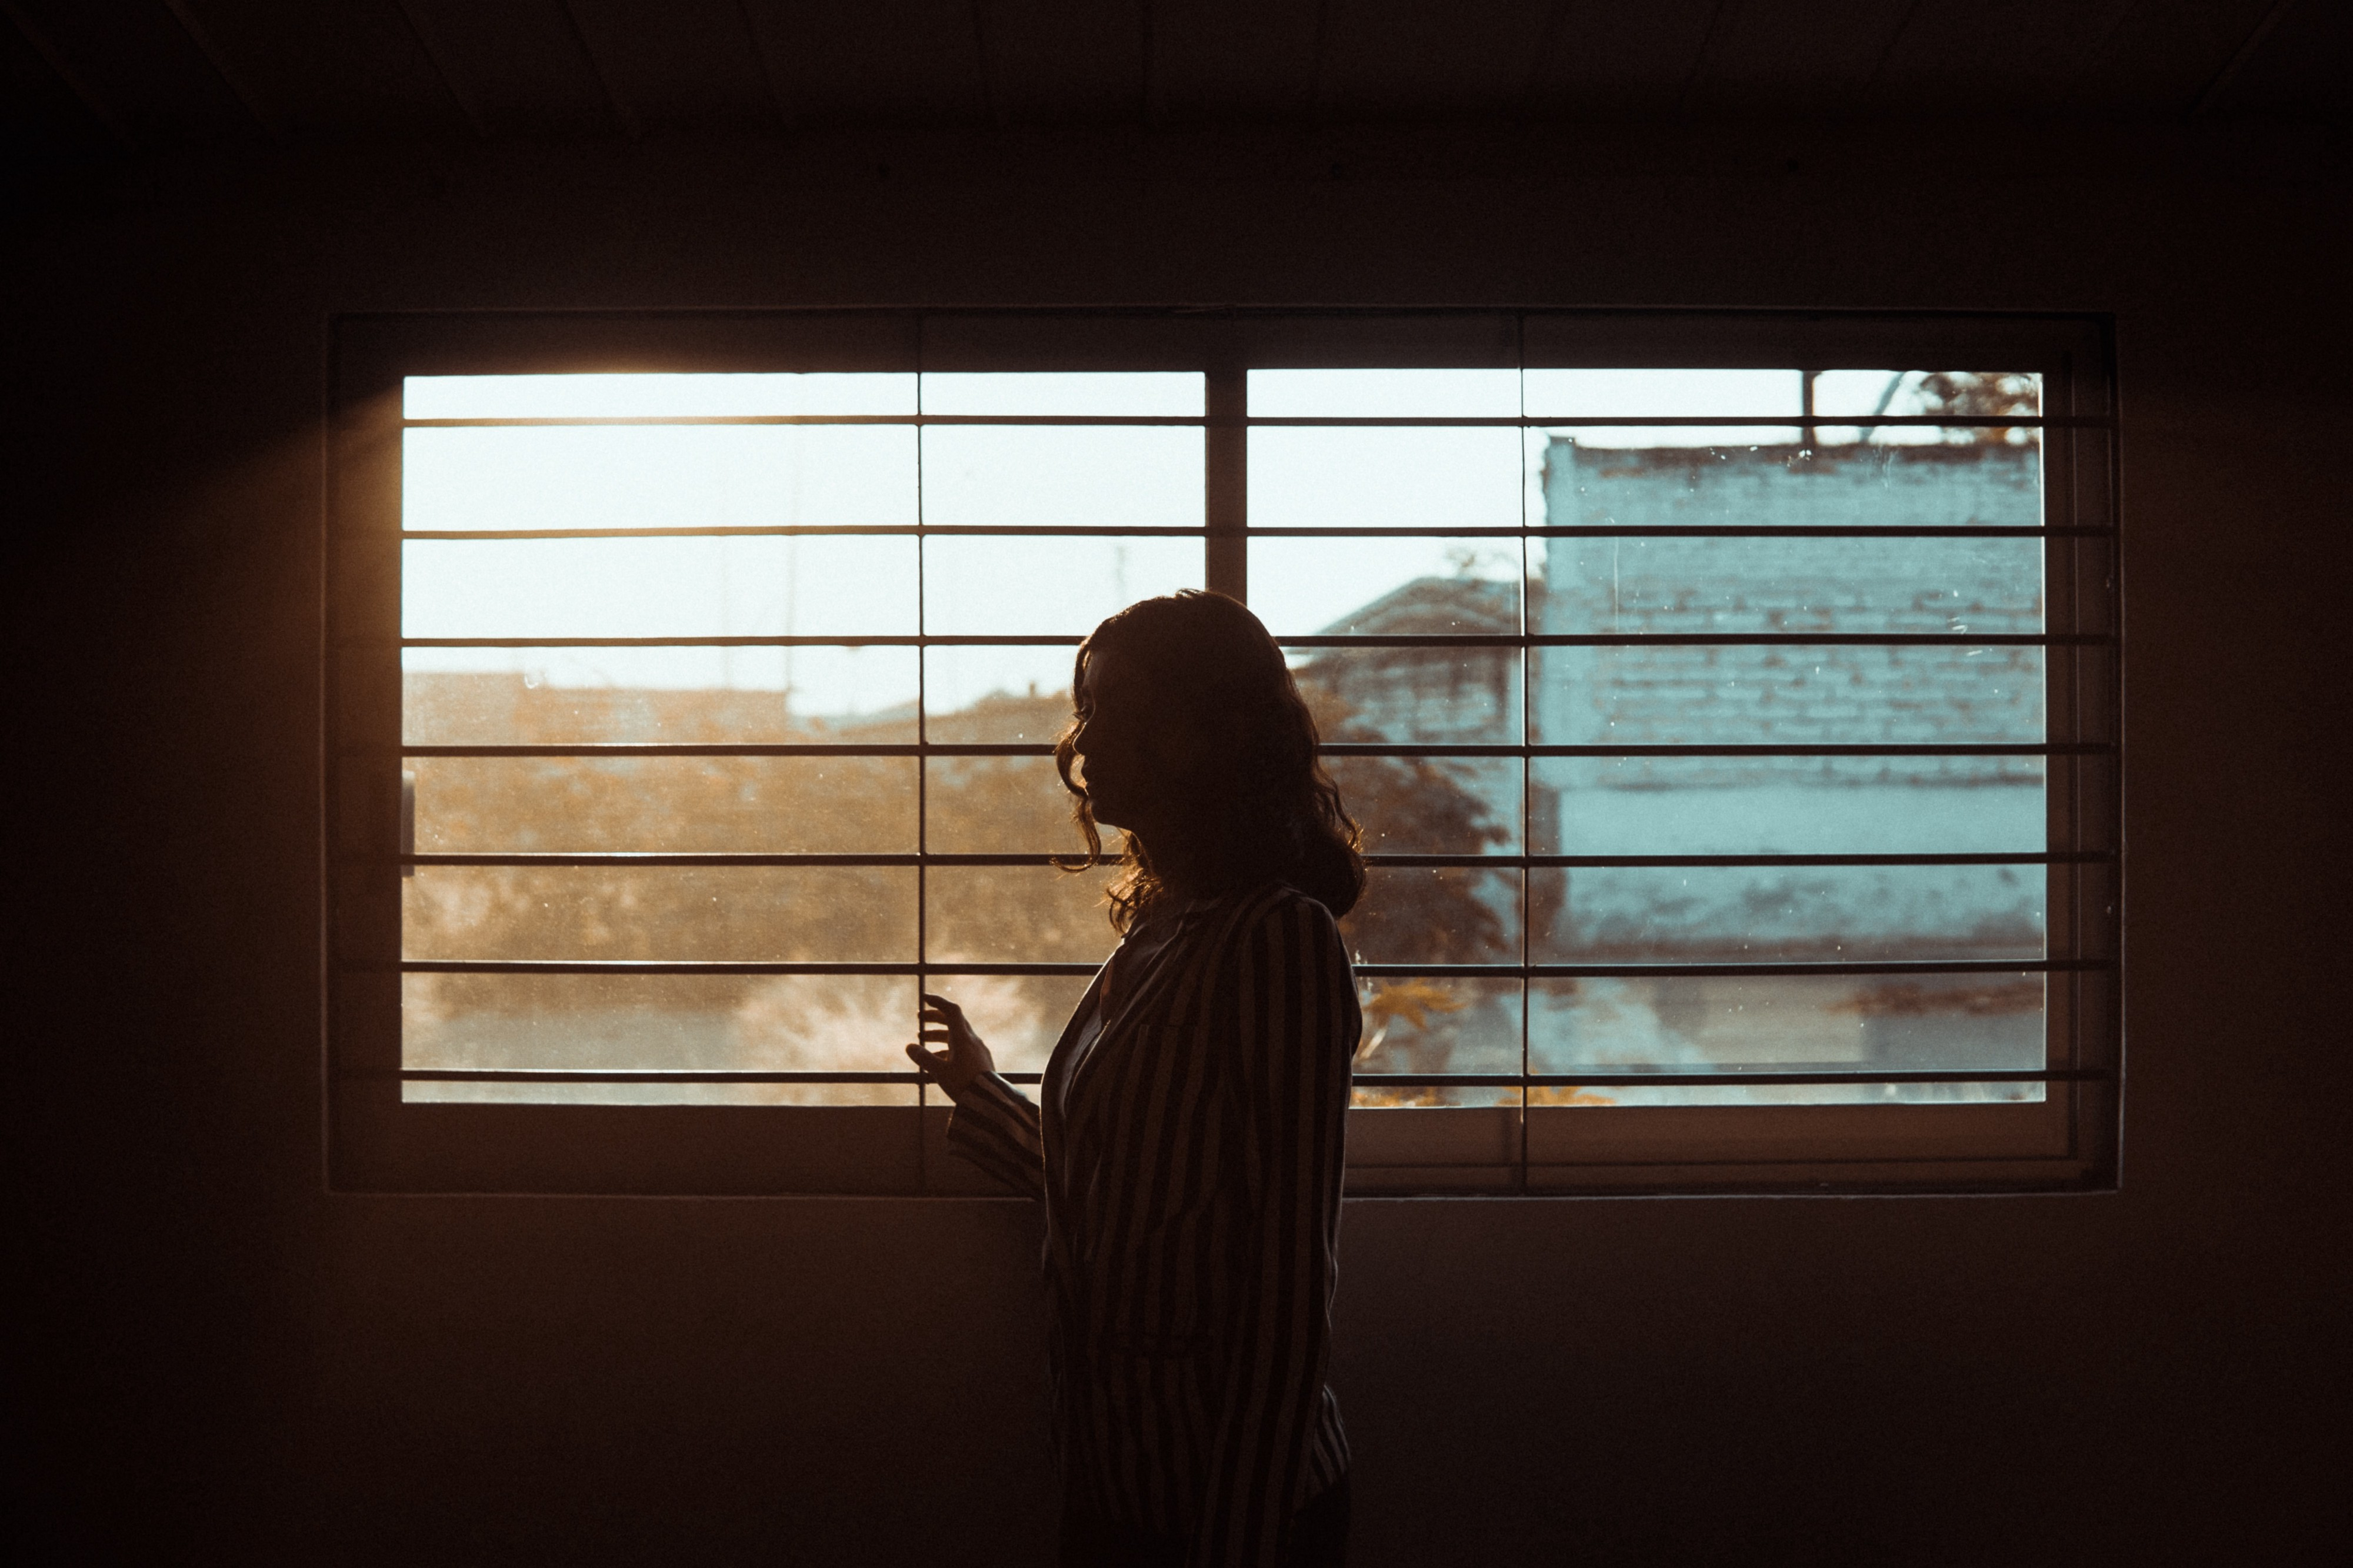 A woman's silhouette in front of a window.